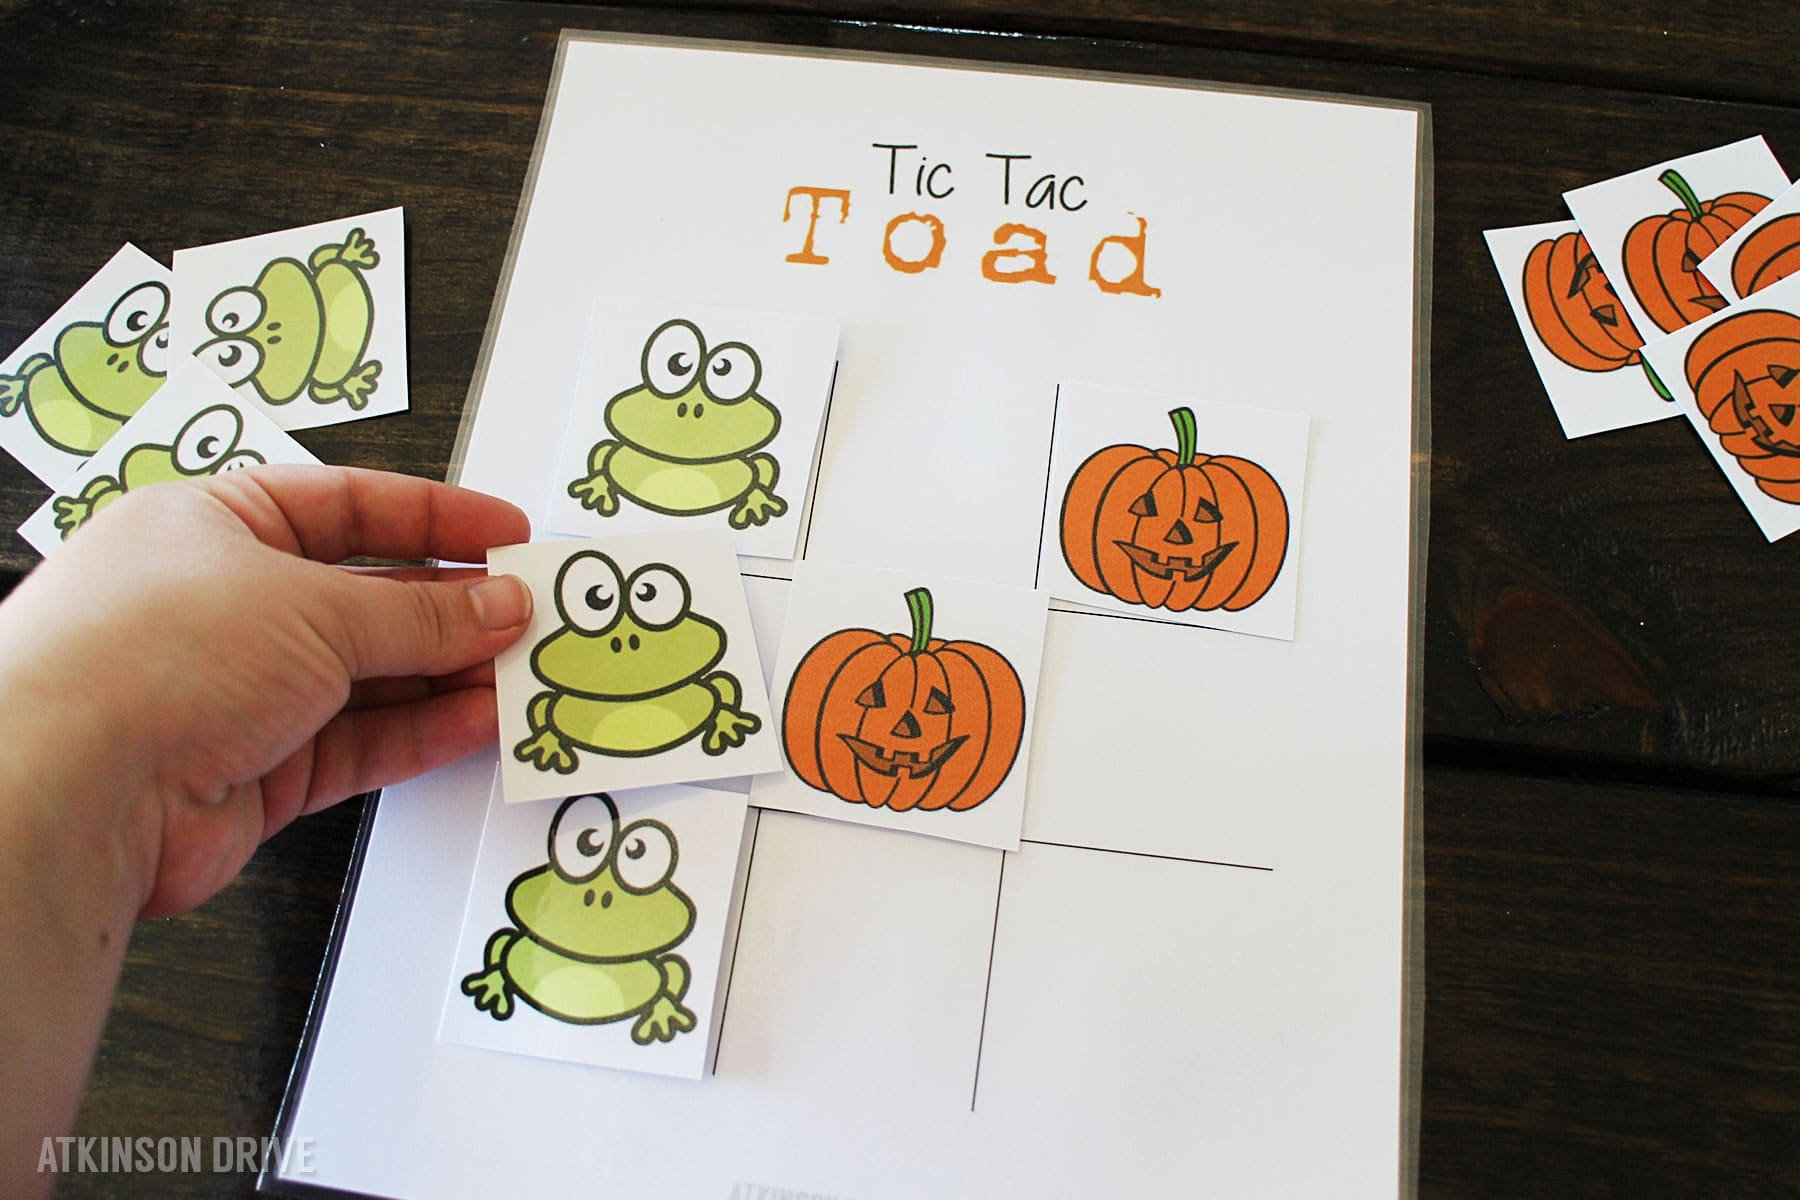 """Have some Halloween fun with your kids by printing out this game of """"Tic Tac Toad"""" (and bonus Pumpkin Patch Match game)!"""